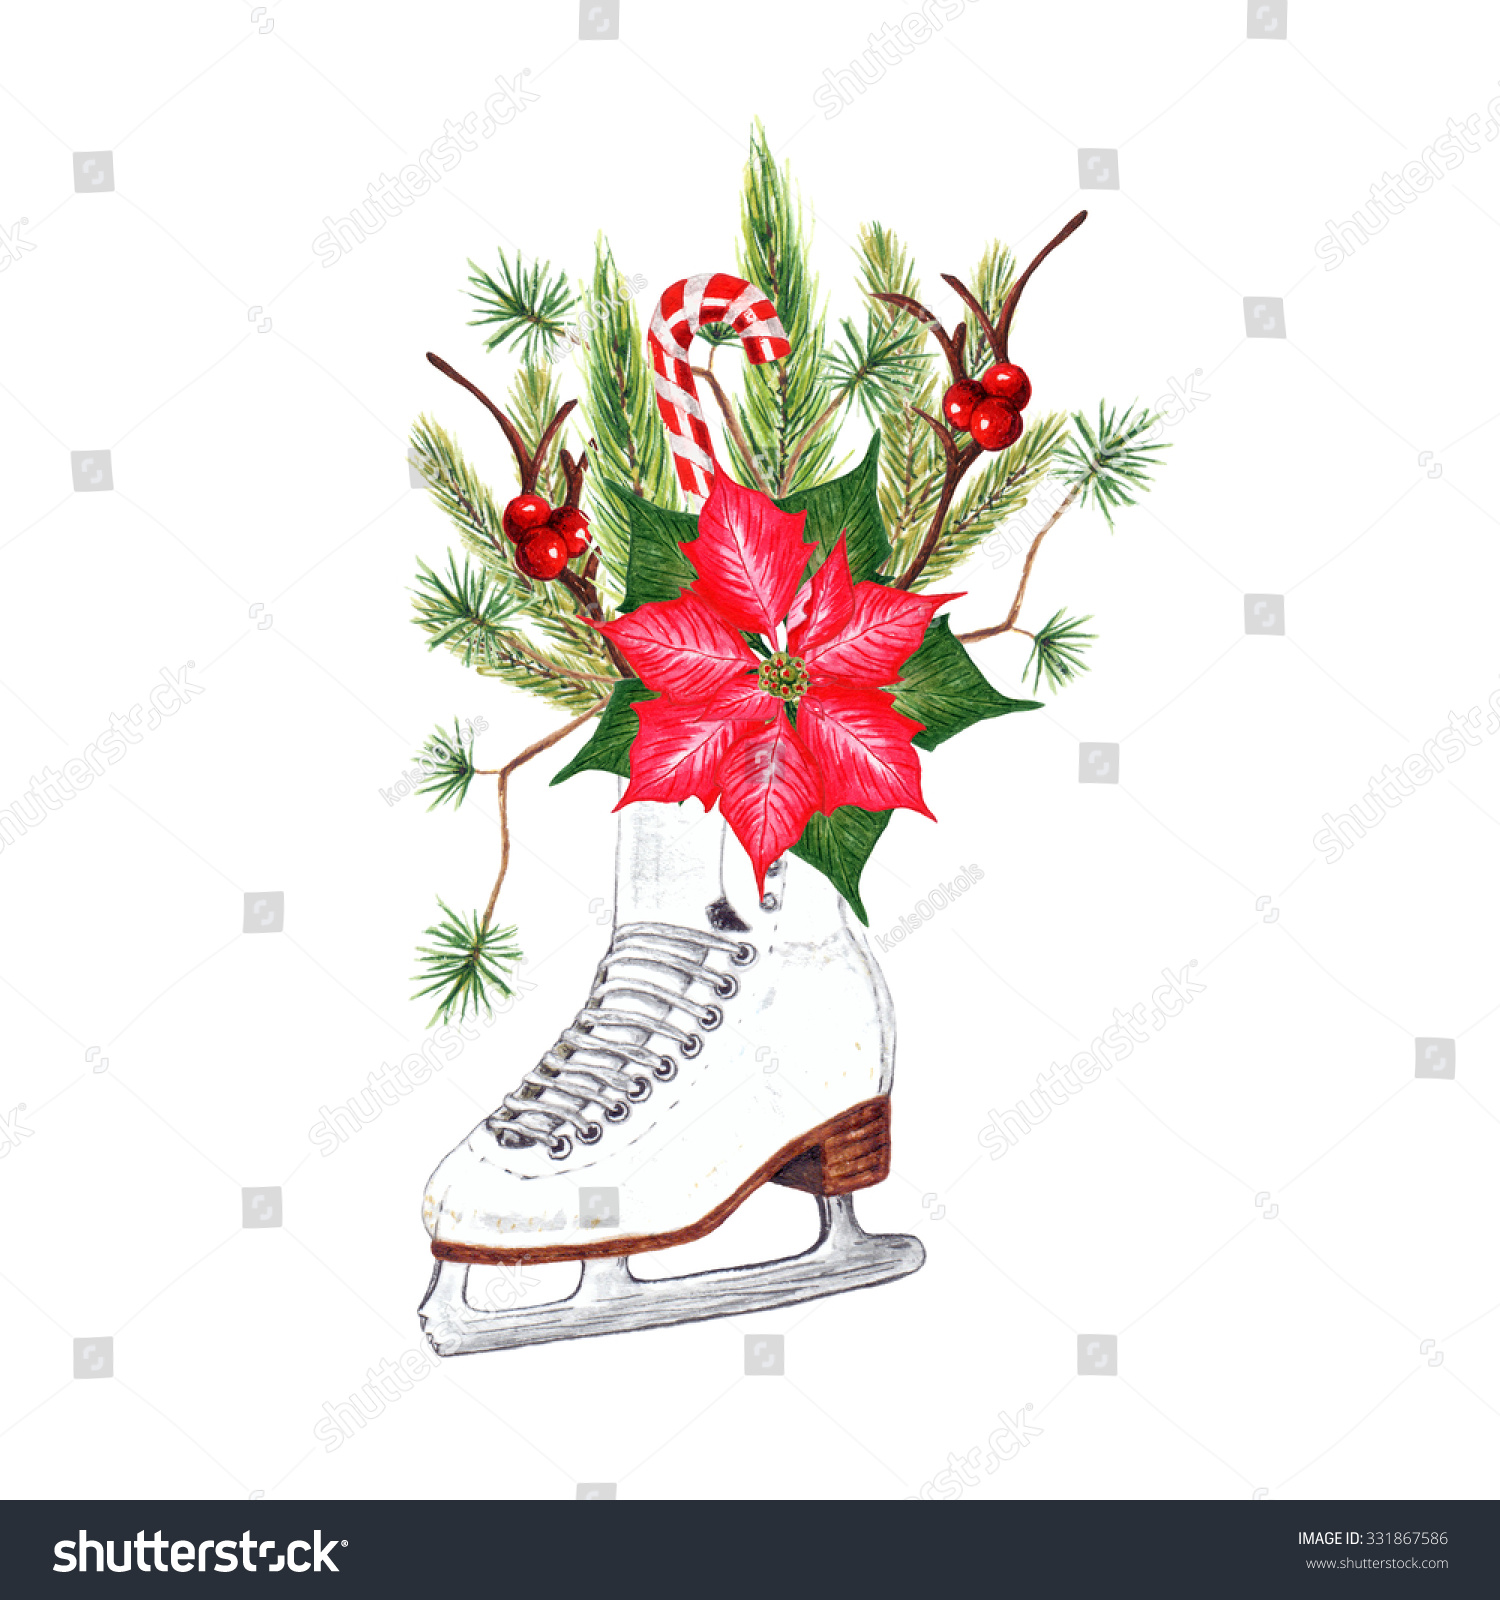 Watercolor Ice Skate Decorated Poinsettia Flower Stock Illustration ...